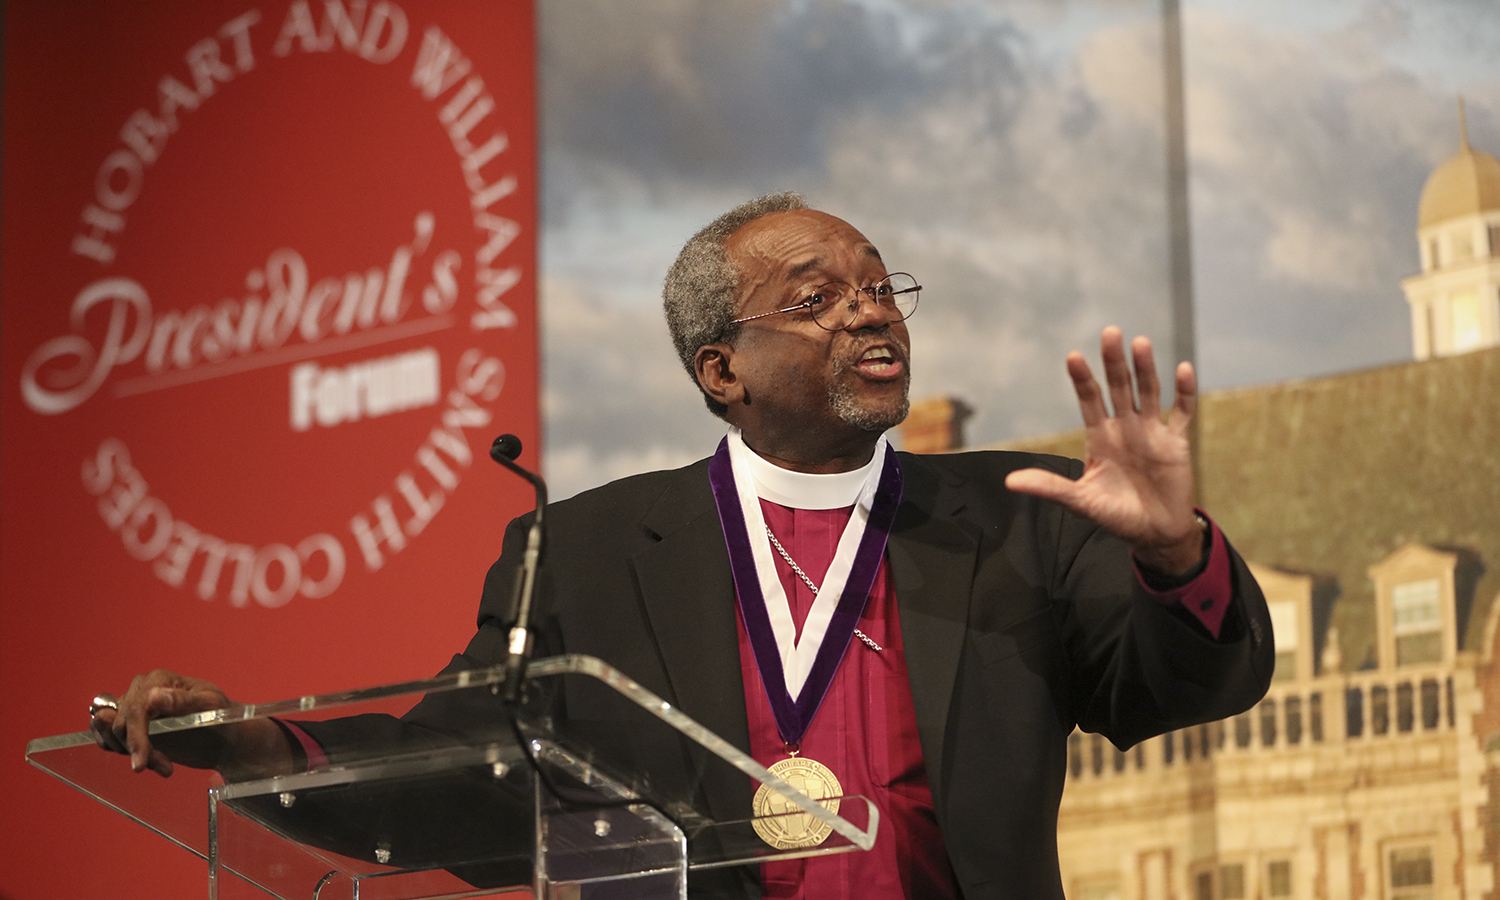 The Most Rev. Michael B. Curry '75, known for delivering the address at Prince Harry and Meghan Markle's wedding in May, receives the Hobart Medal of Excellence during a visit to campus. The annual honors, which complement the William Smith Alumnae Achievement Awards, bring notable alums to campus each year.